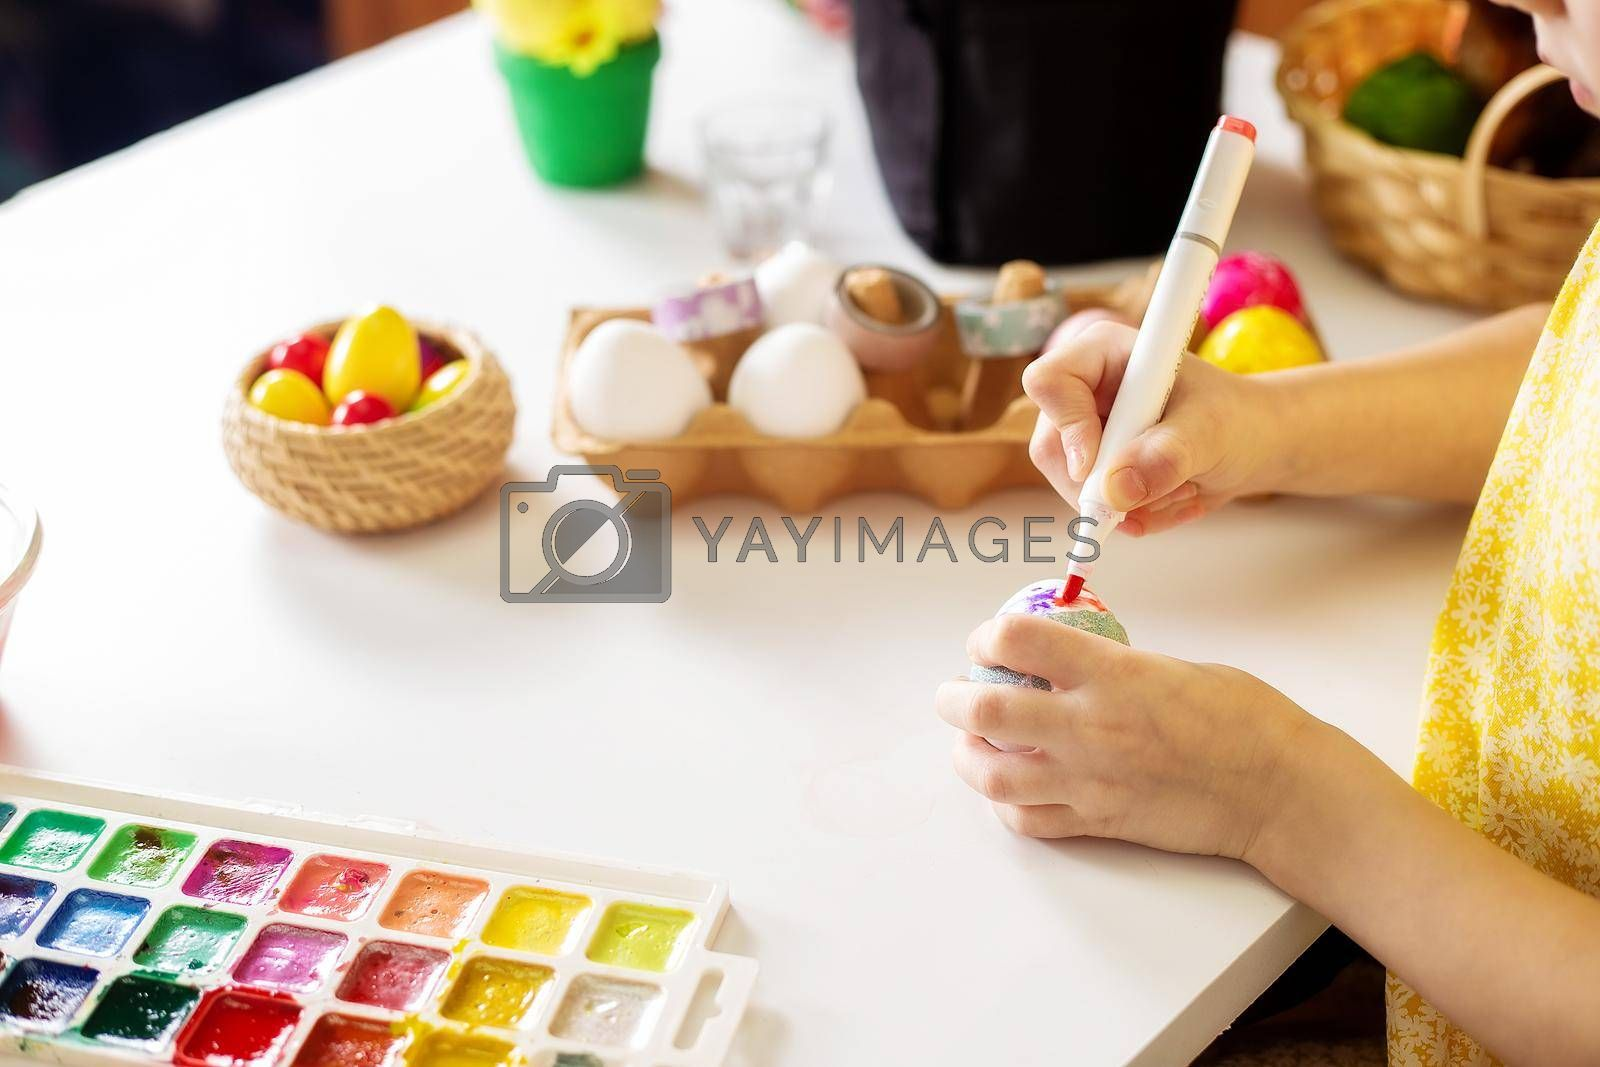 A close-up on the hands of a small girl 5 years old paints eggs with markers by galinasharapova